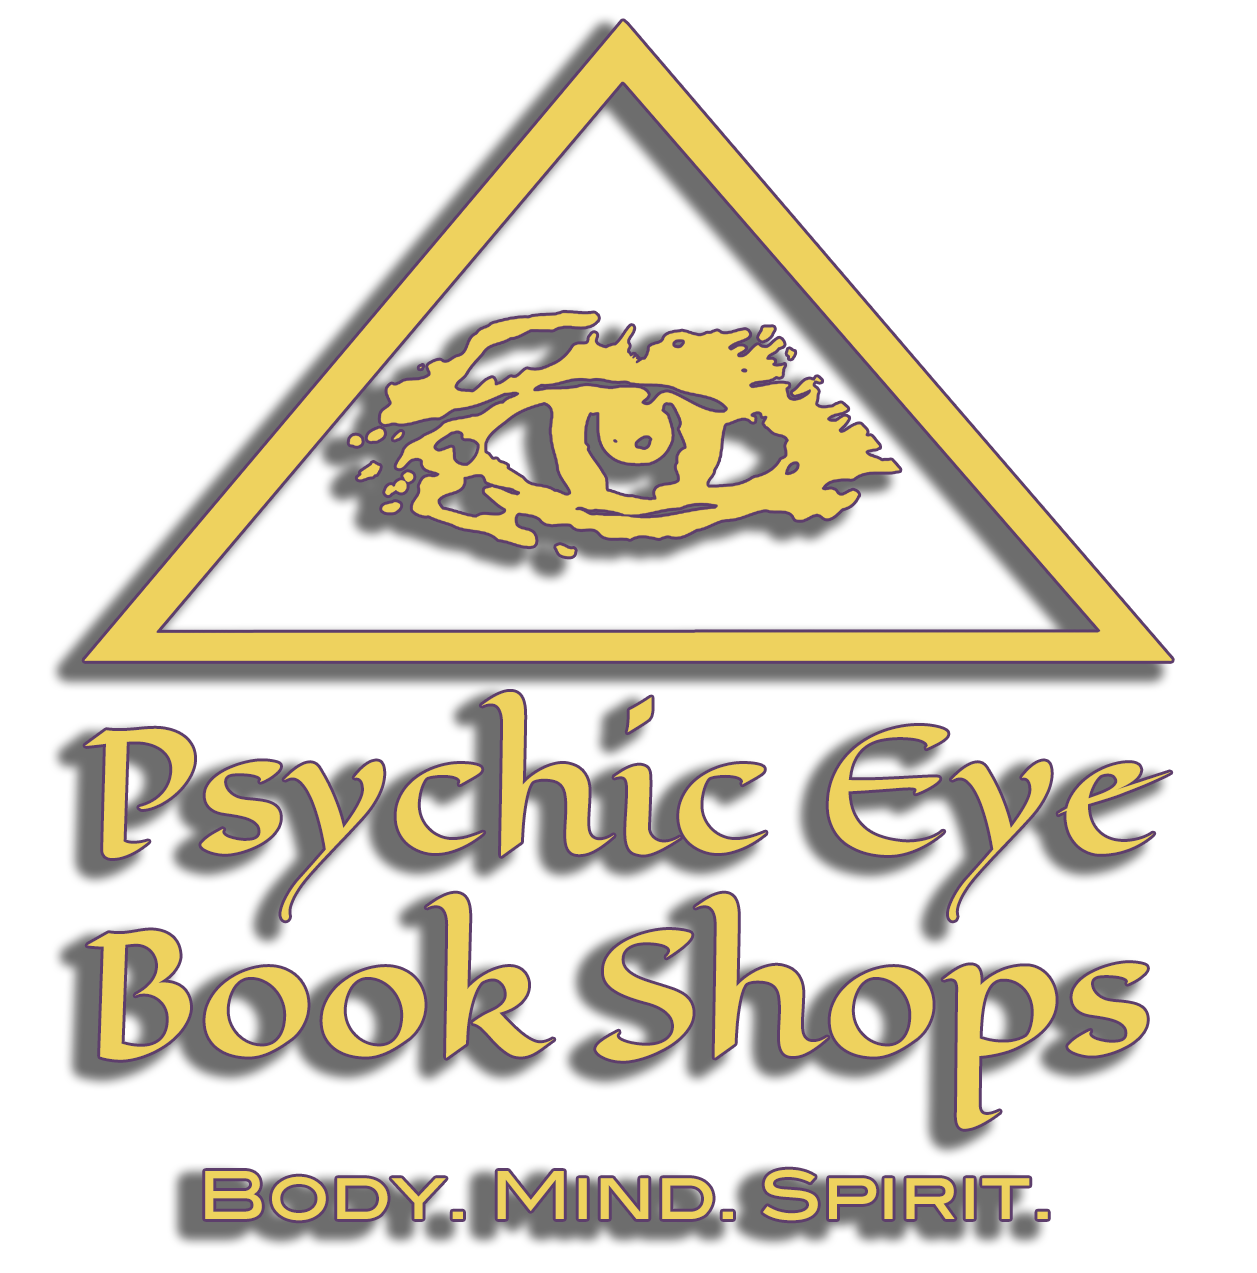 Psychic Eye Book Shops